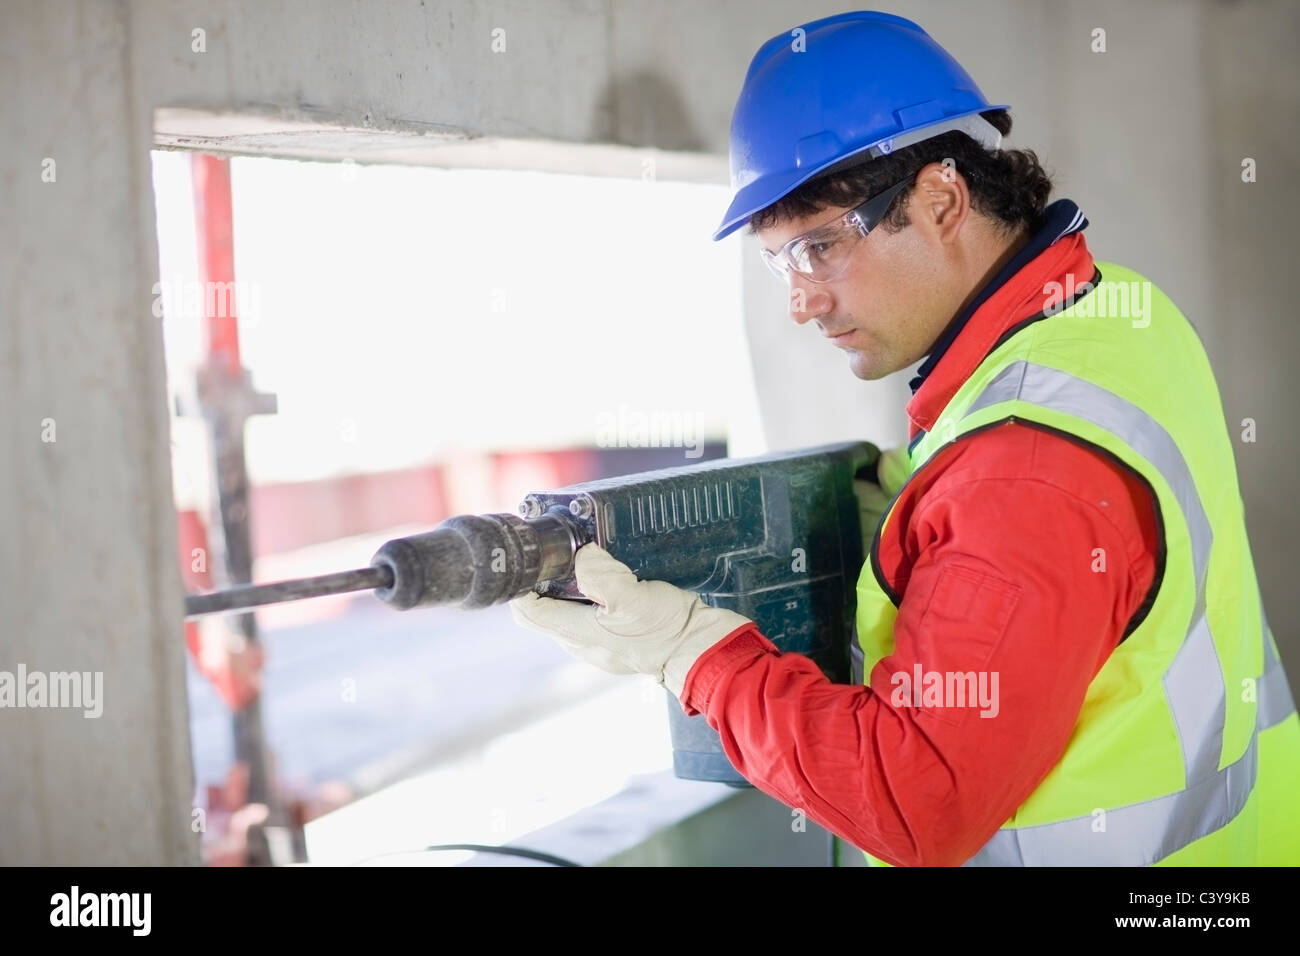 Building worker handling a power drill - Stock Image